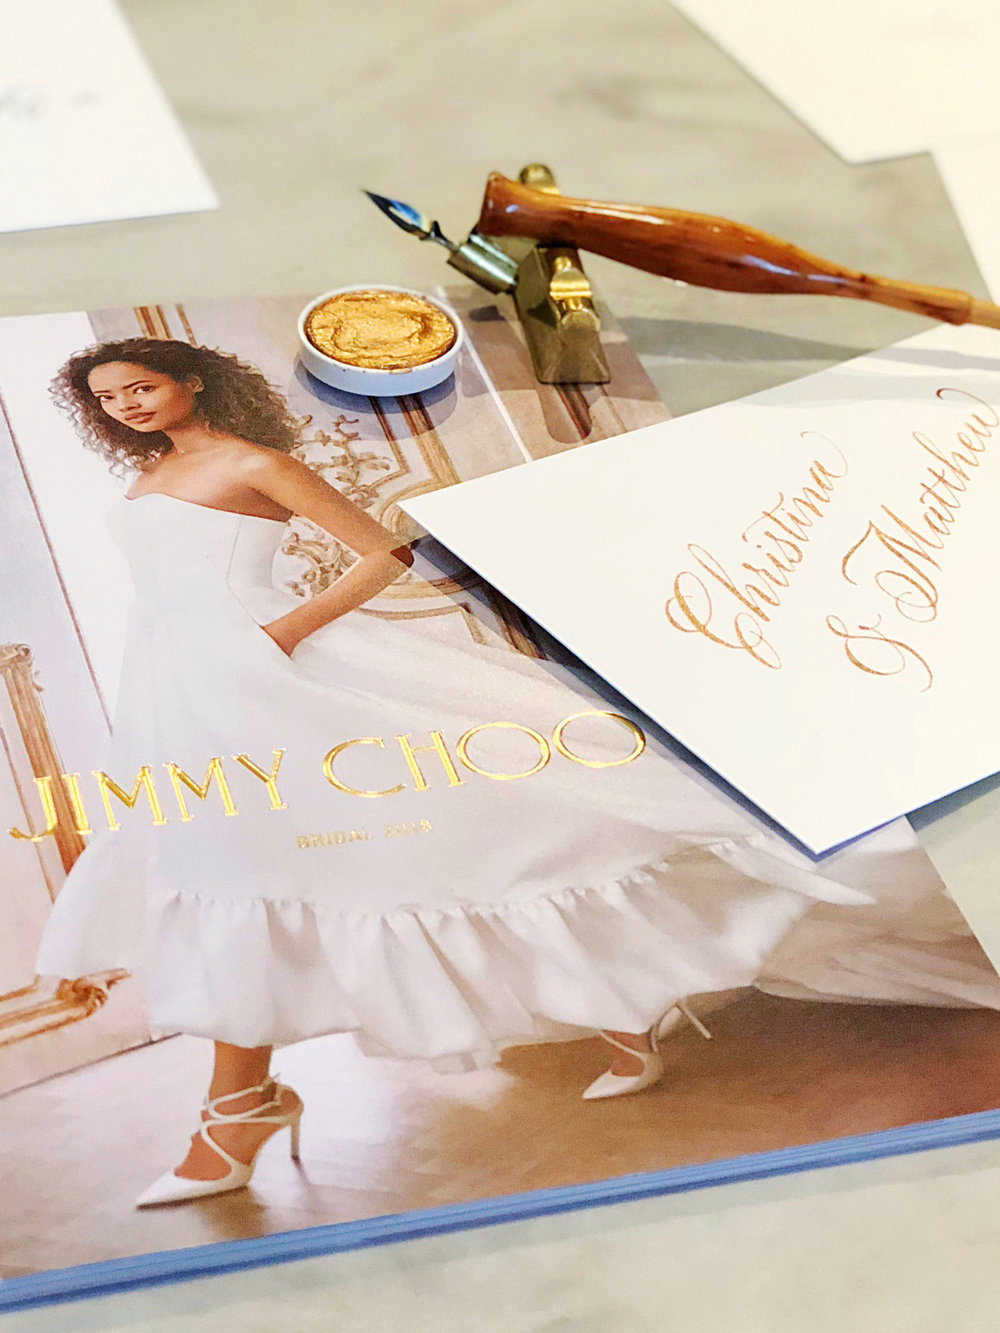 Jimmy Choo on-site calligraphy // www.chavelli.com